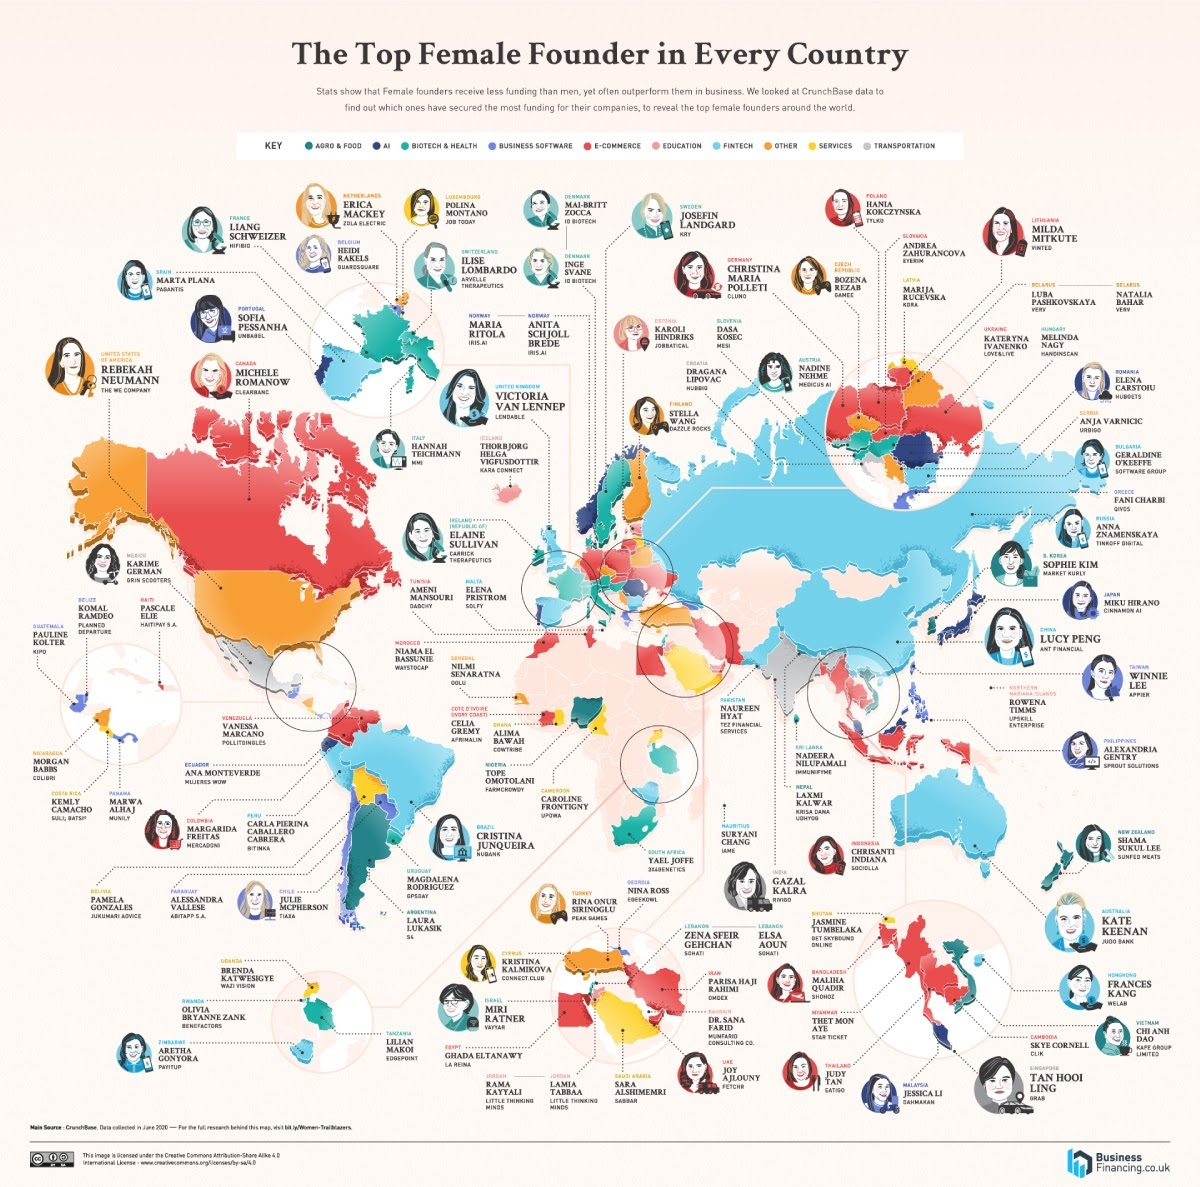 The Top Female Founder in Each Country #infographic